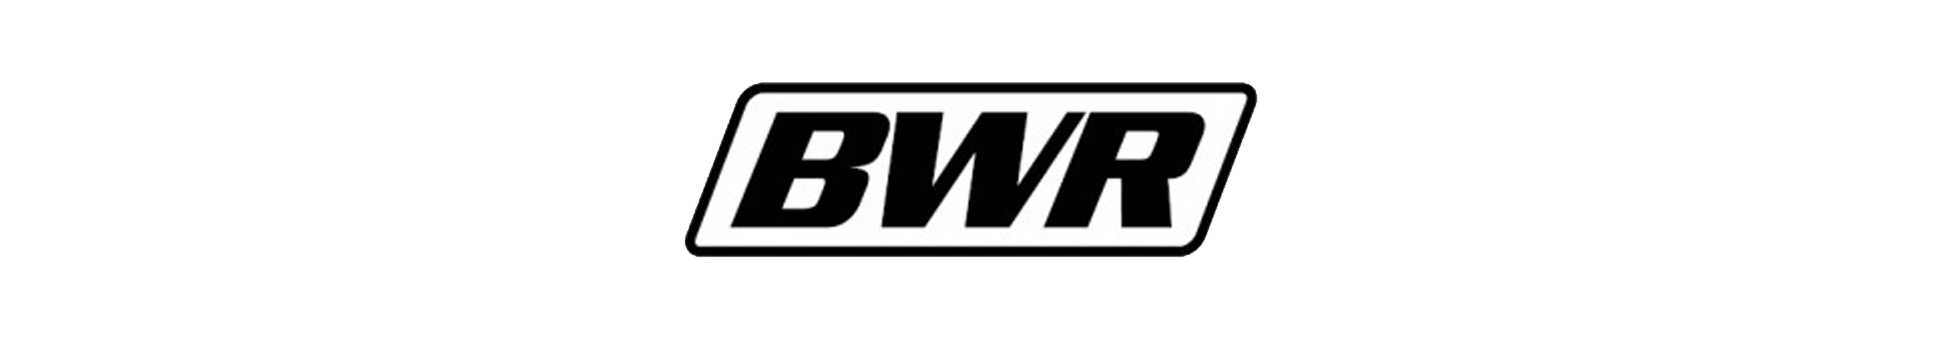 bwrbrand.png